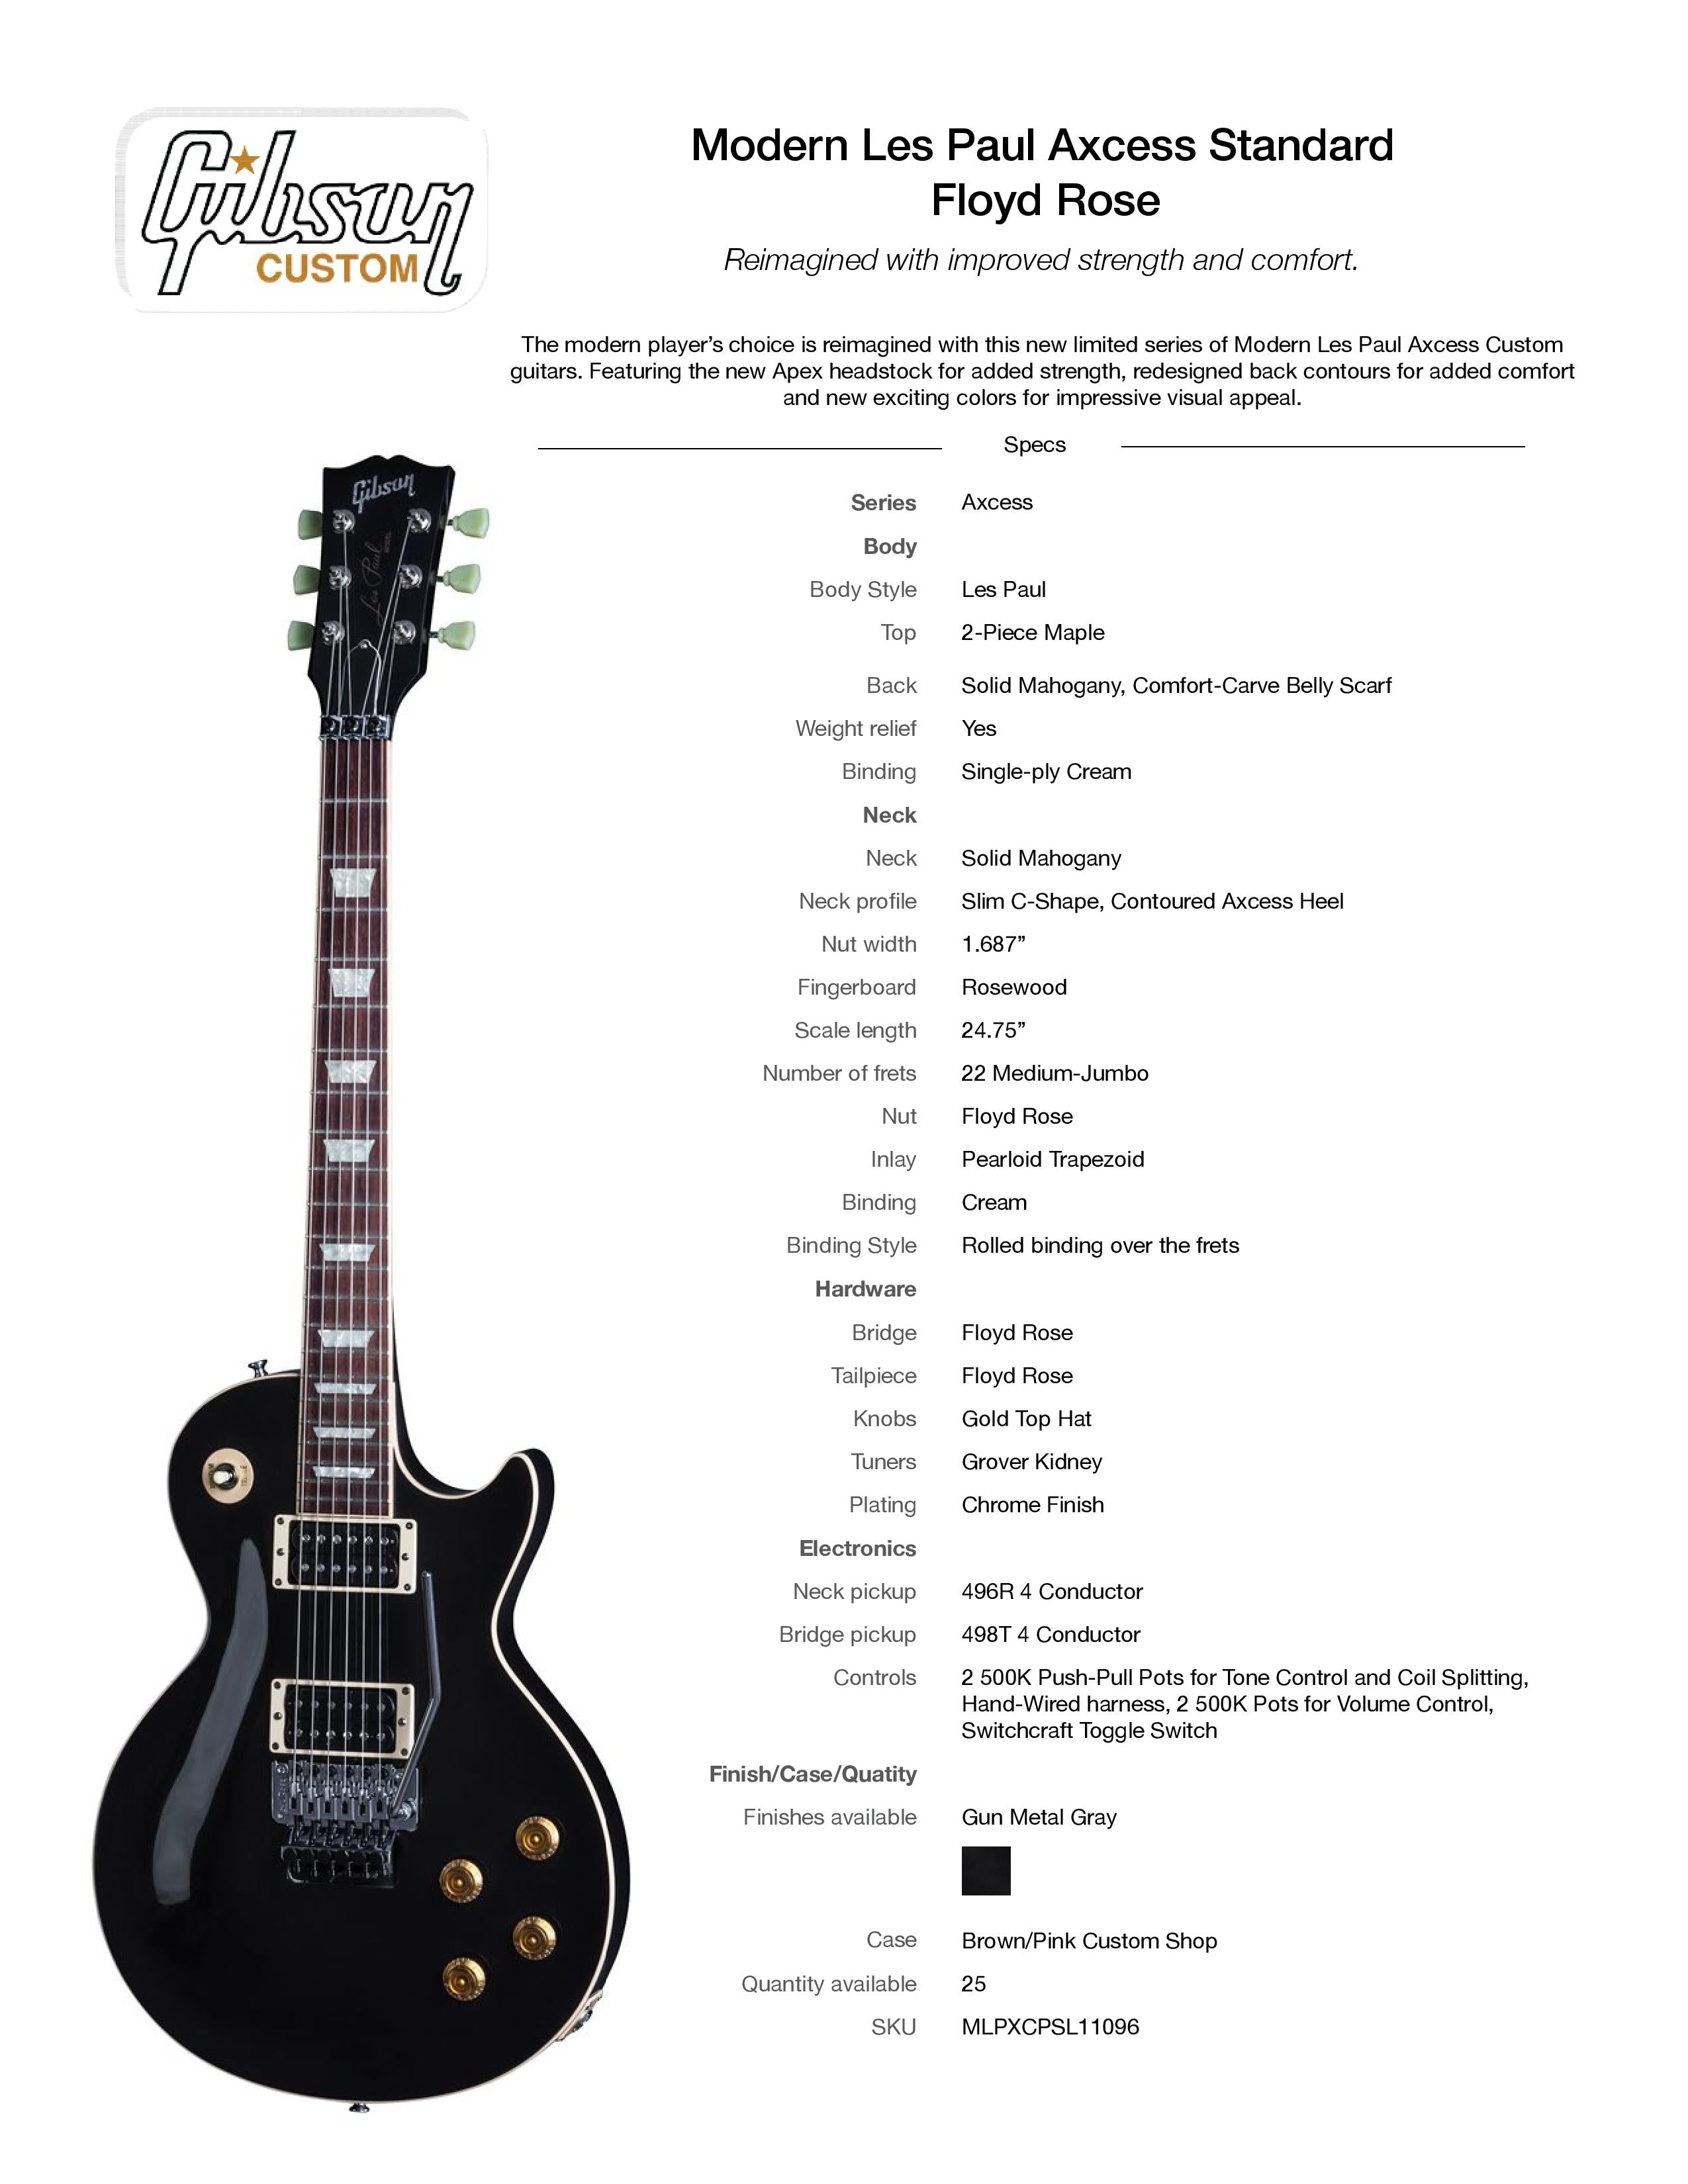 2017 Gibson Custom Shop Modern Les Paul Axcess Standard Floyd Rose Gun Metal Gray Rosewood